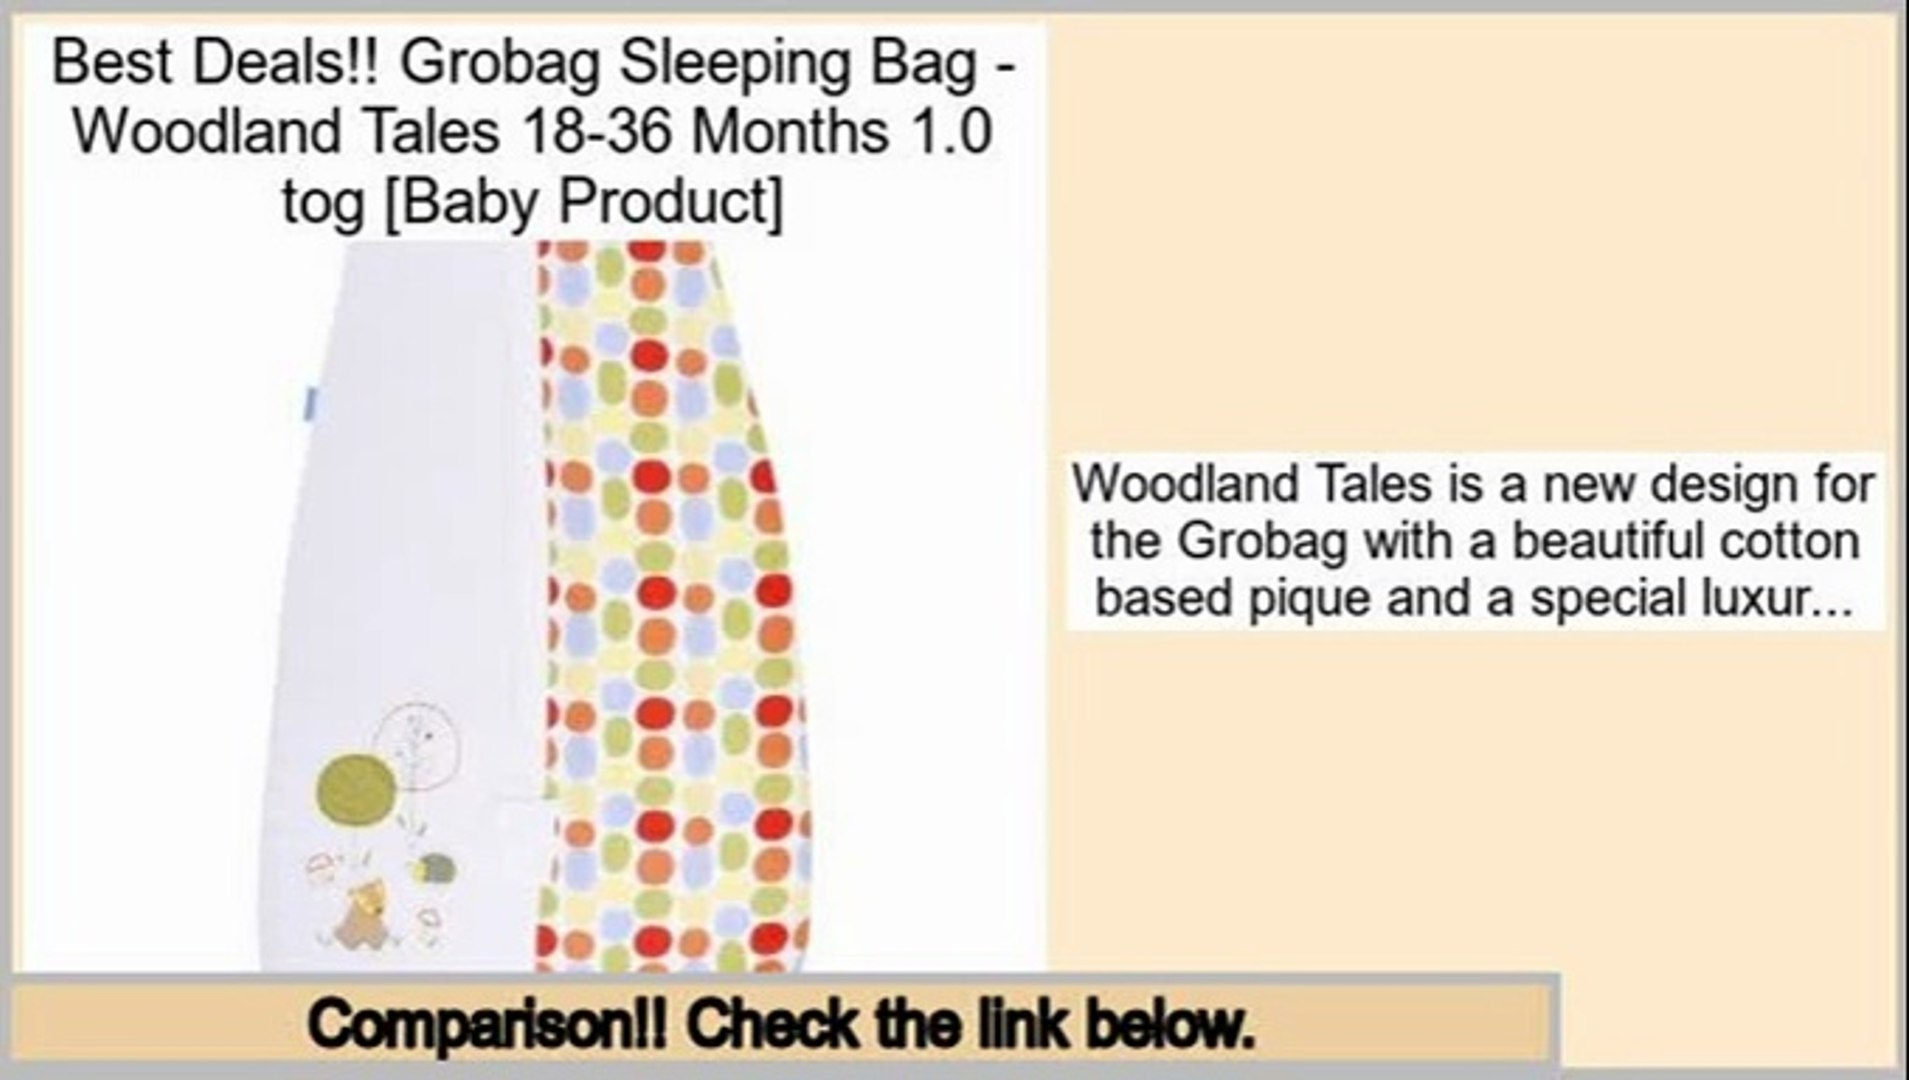 Comparison Grobag Sleeping Bag